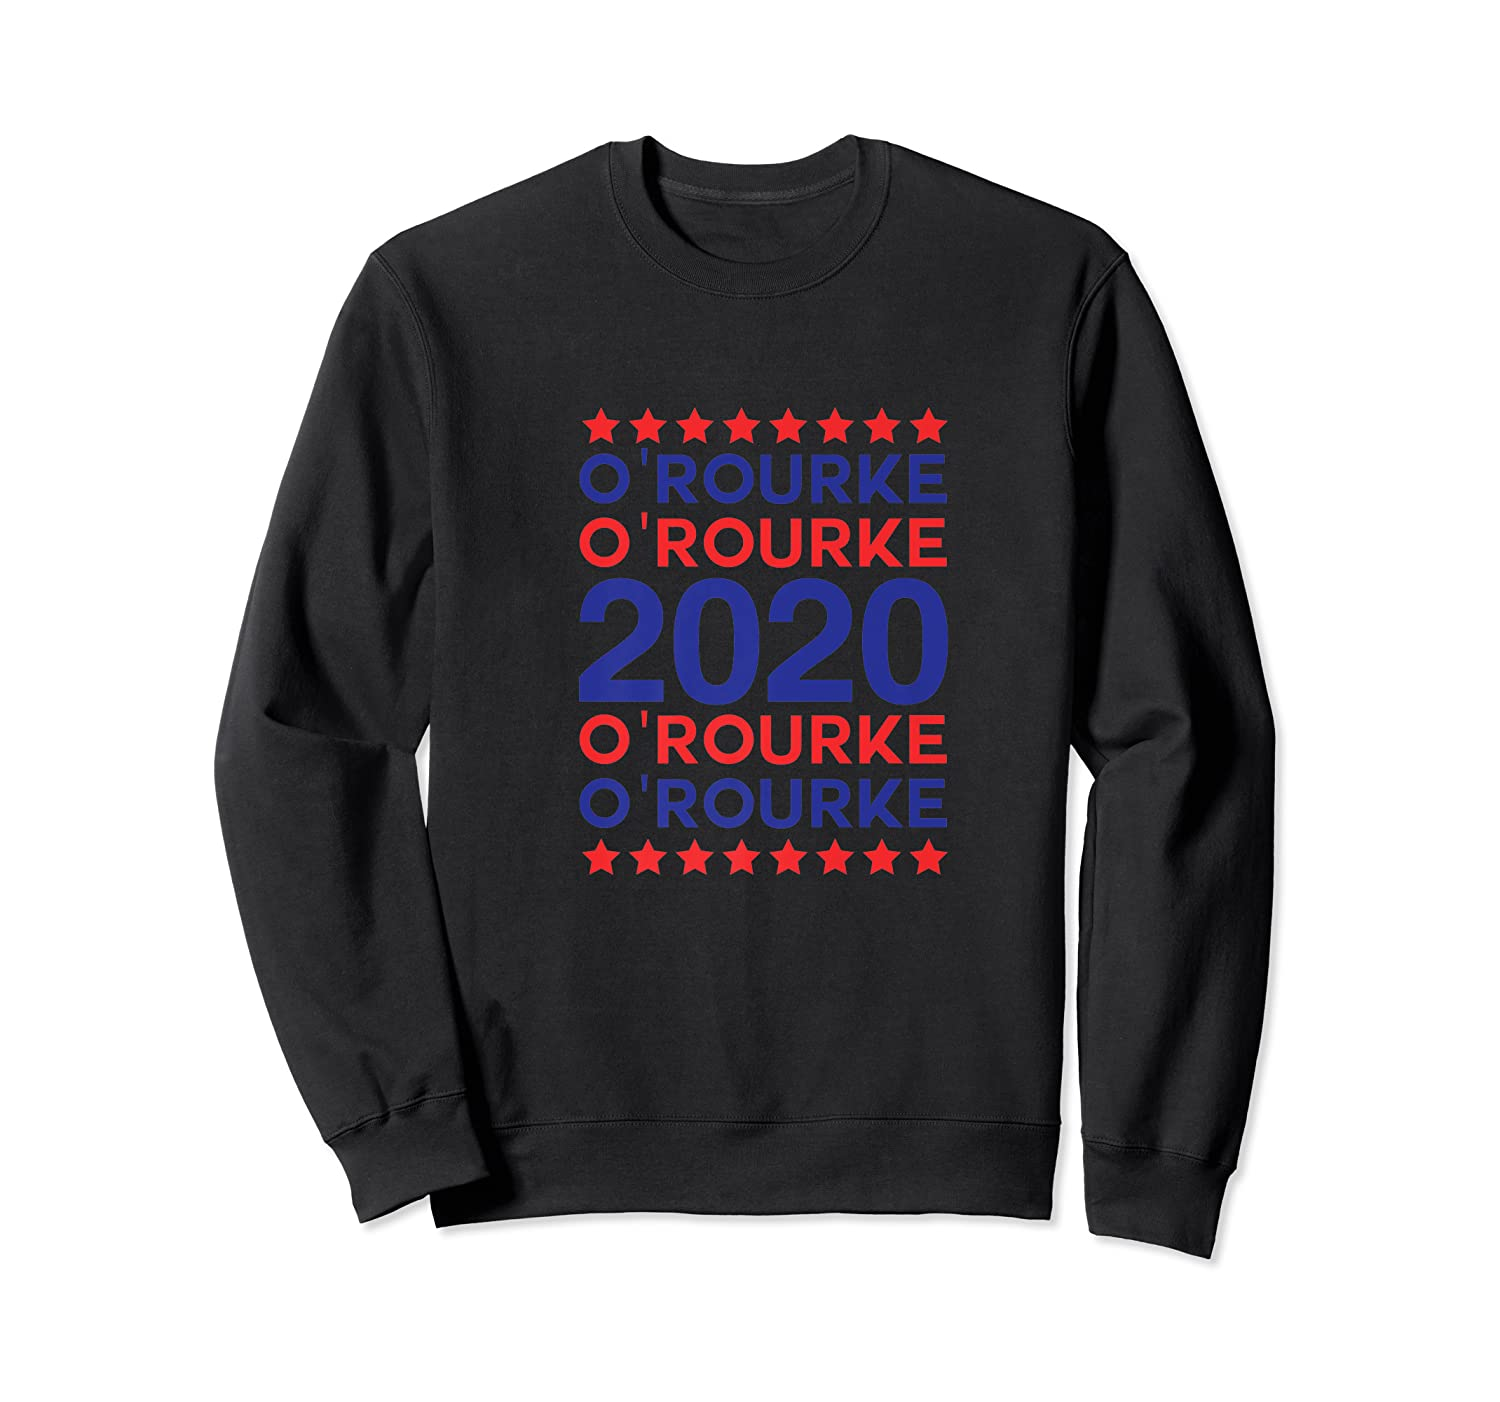 O'rourke 2020 Democrat Party Campaign Usa President Election Shirts Crewneck Sweater